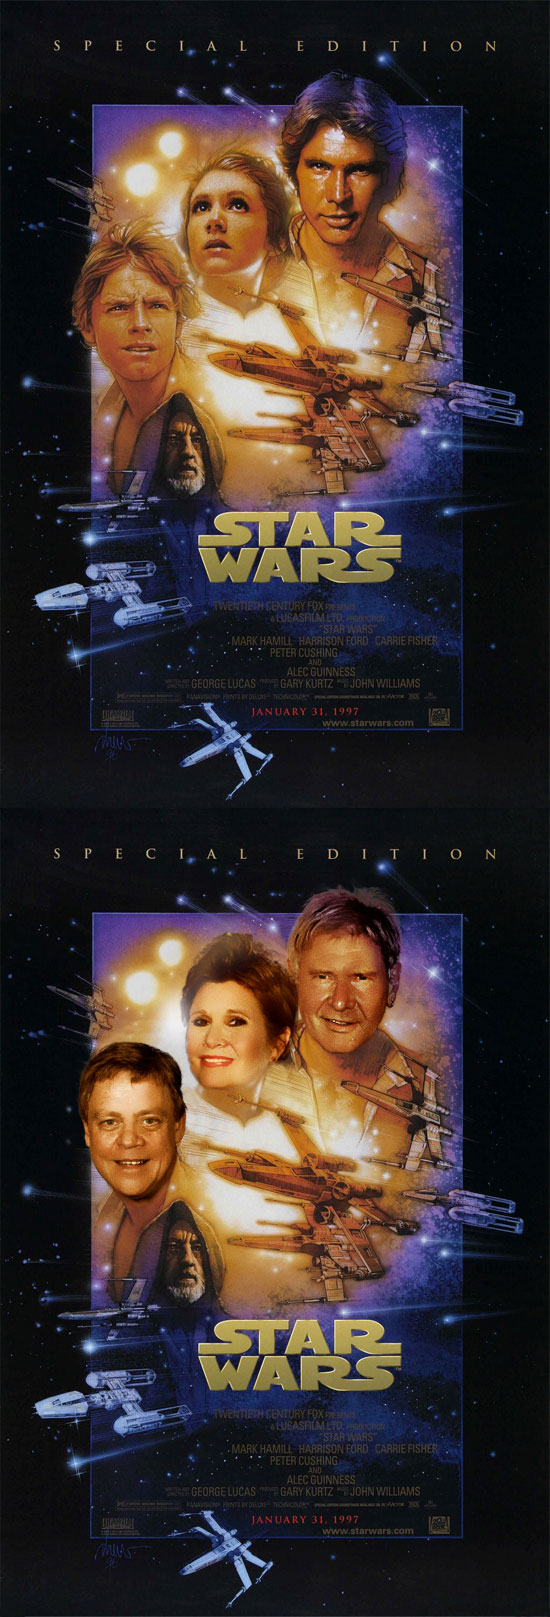 Star Wars, Funny photos, star wars before and after